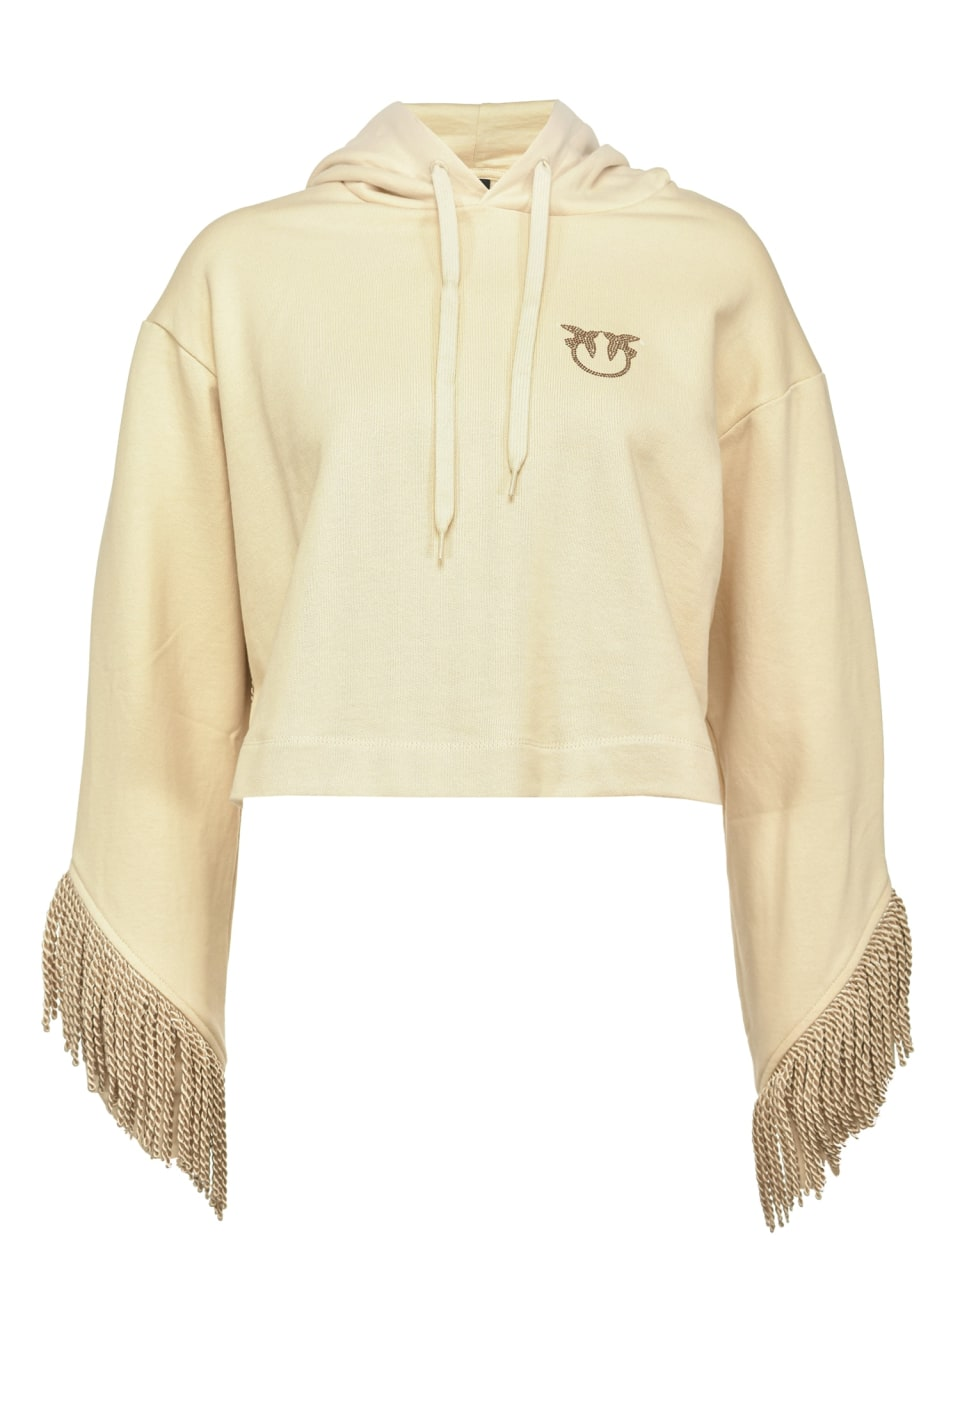 Cropped sweatshirt with fringe